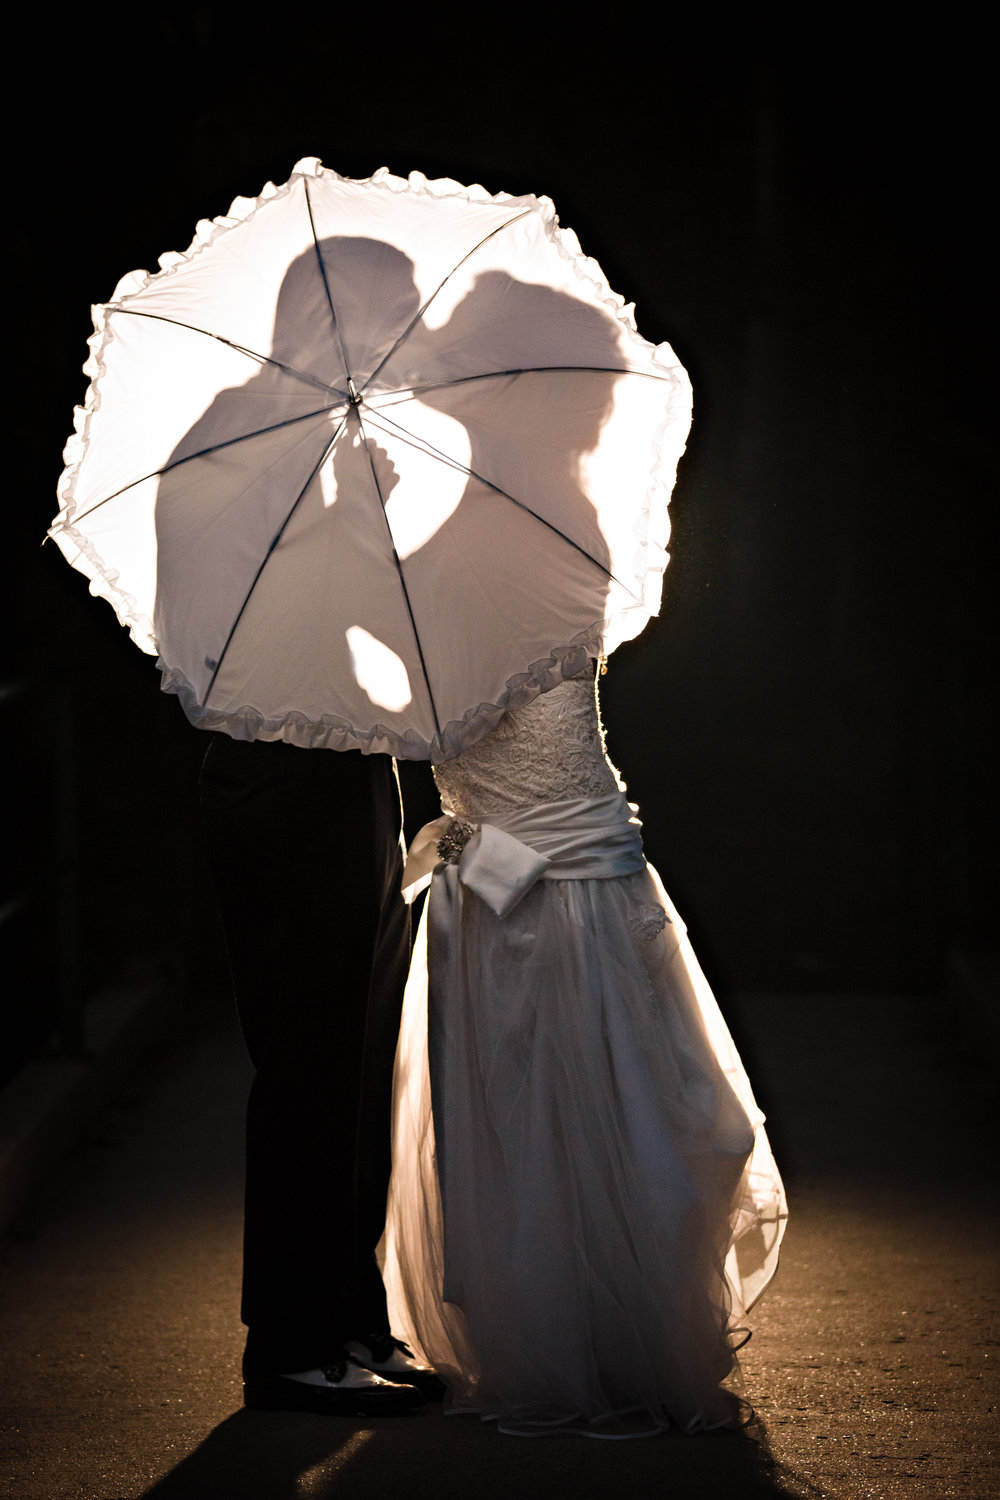 red-lodge-wedding-rock-creek-resort-bride-groom-under-umbrella.jpg